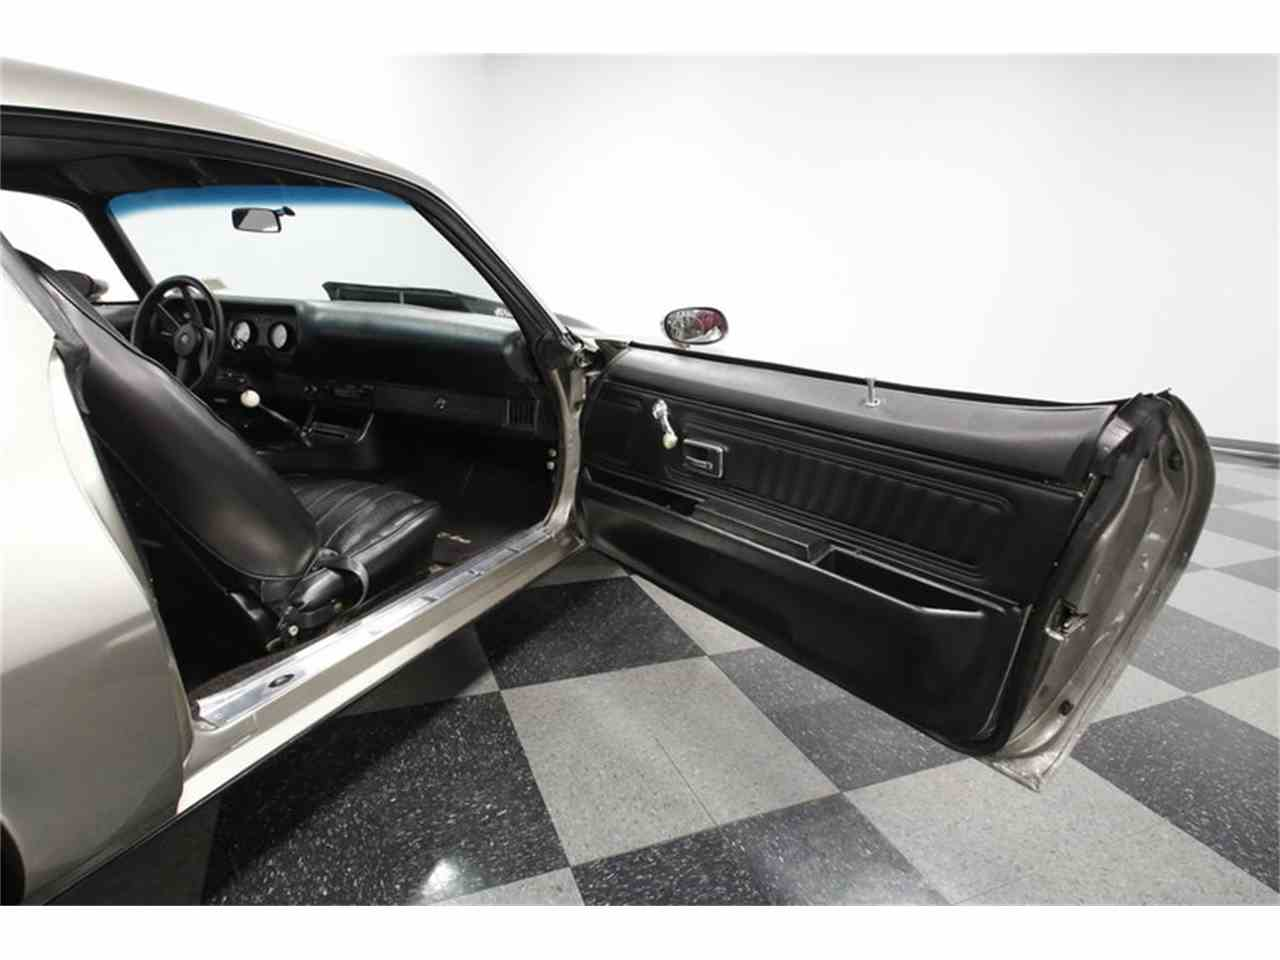 Large Picture of 1972 Chevrolet Camaro located in North Carolina - $37,995.00 Offered by Streetside Classics - Charlotte - MZJ6